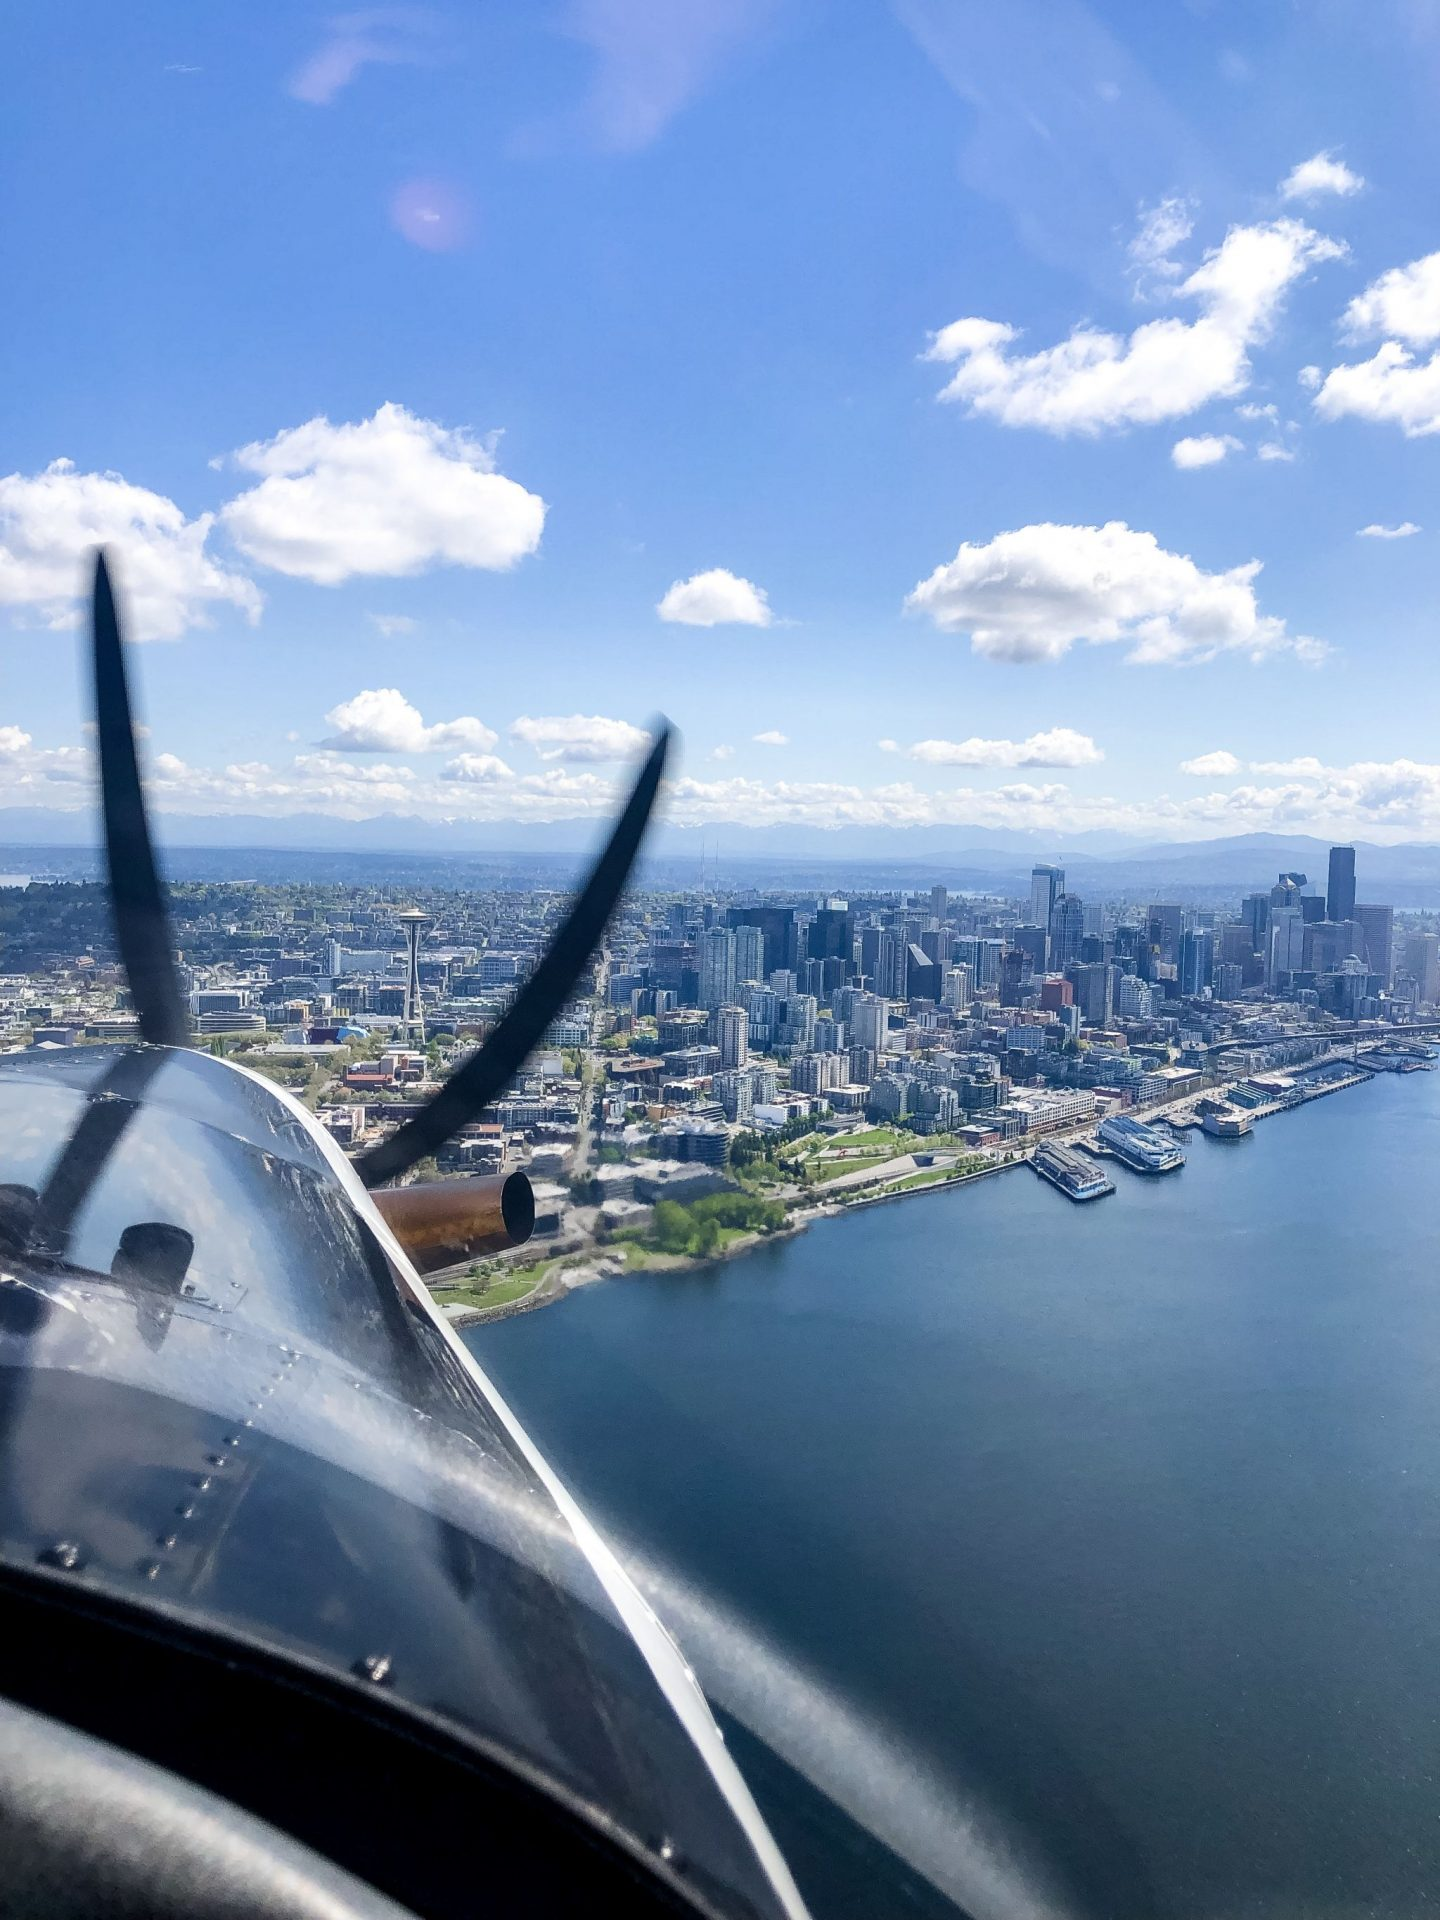 view of Seattle from the seaplane